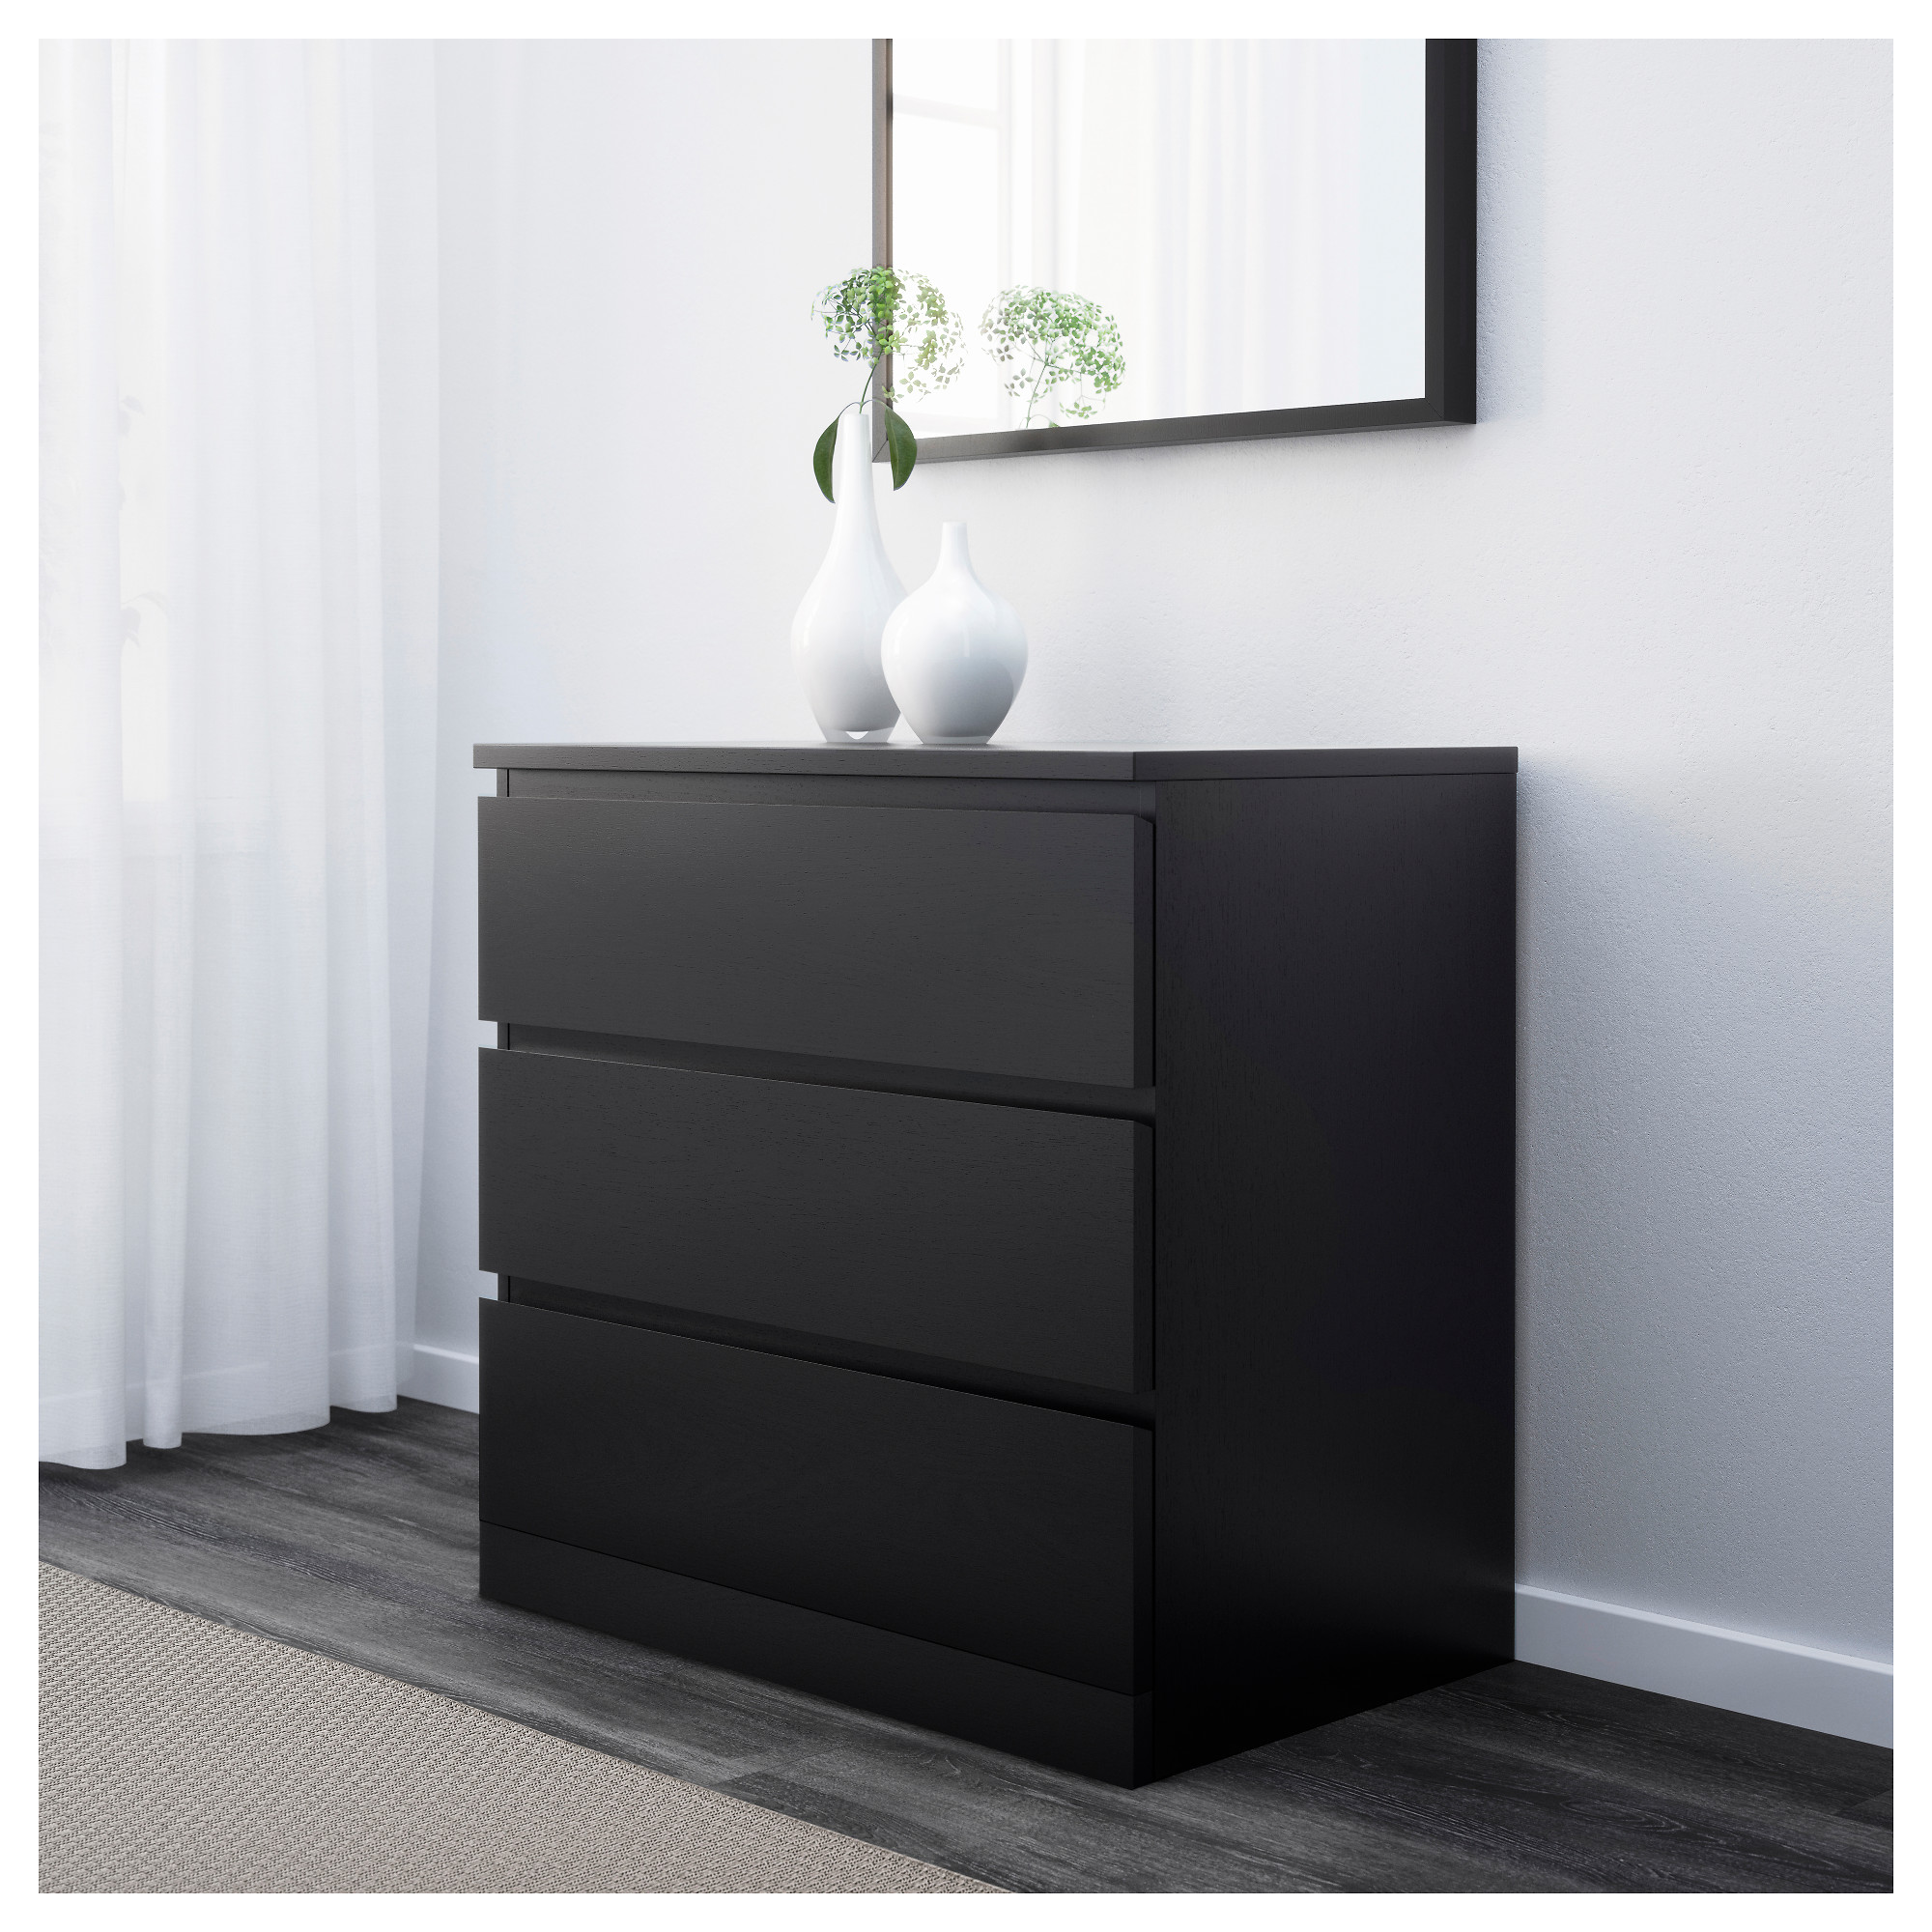 org furniture storage rosewood at f century mid for credenzas modern case milo baughman black and id pieces lacquer dresser sale